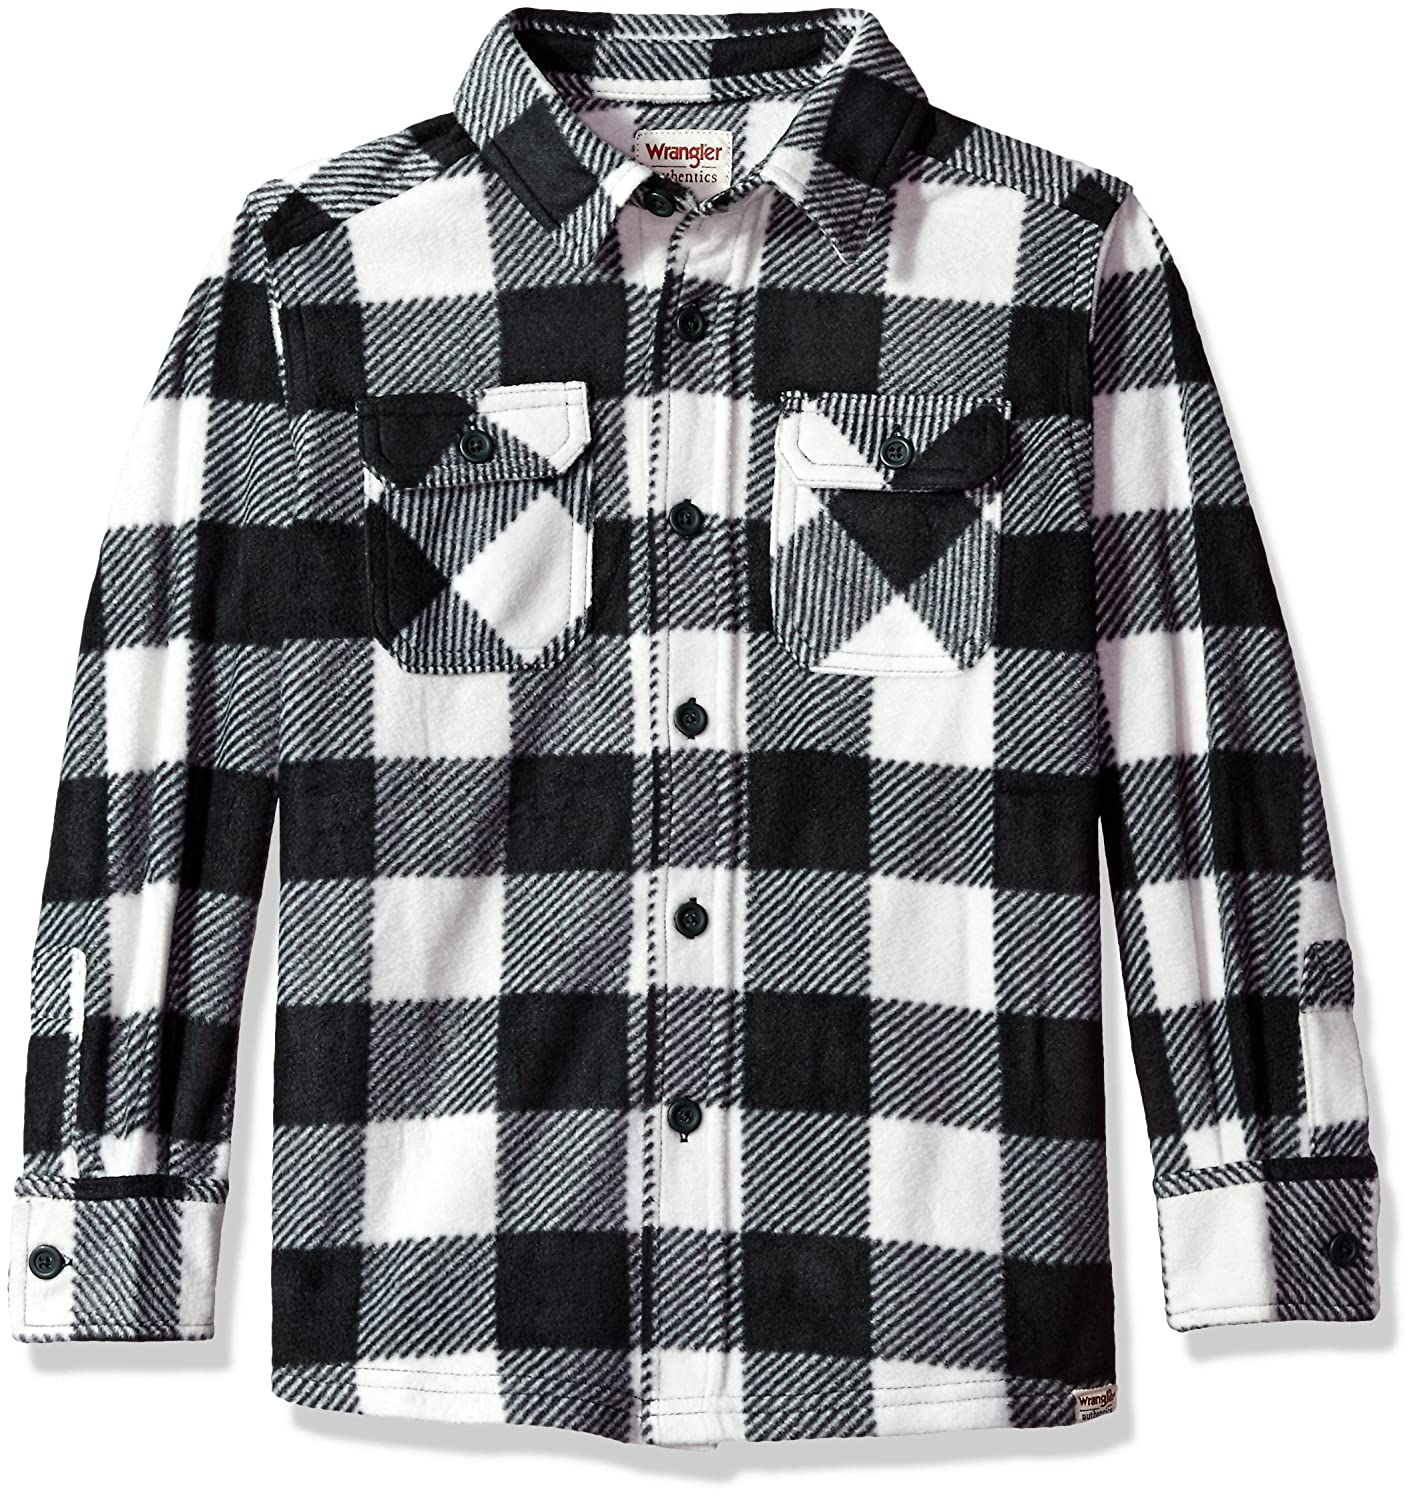 Wrangler Authentics Boys Authentics Long-Sleeve Buffalo Plaid Fleece Shirt ZB1LF